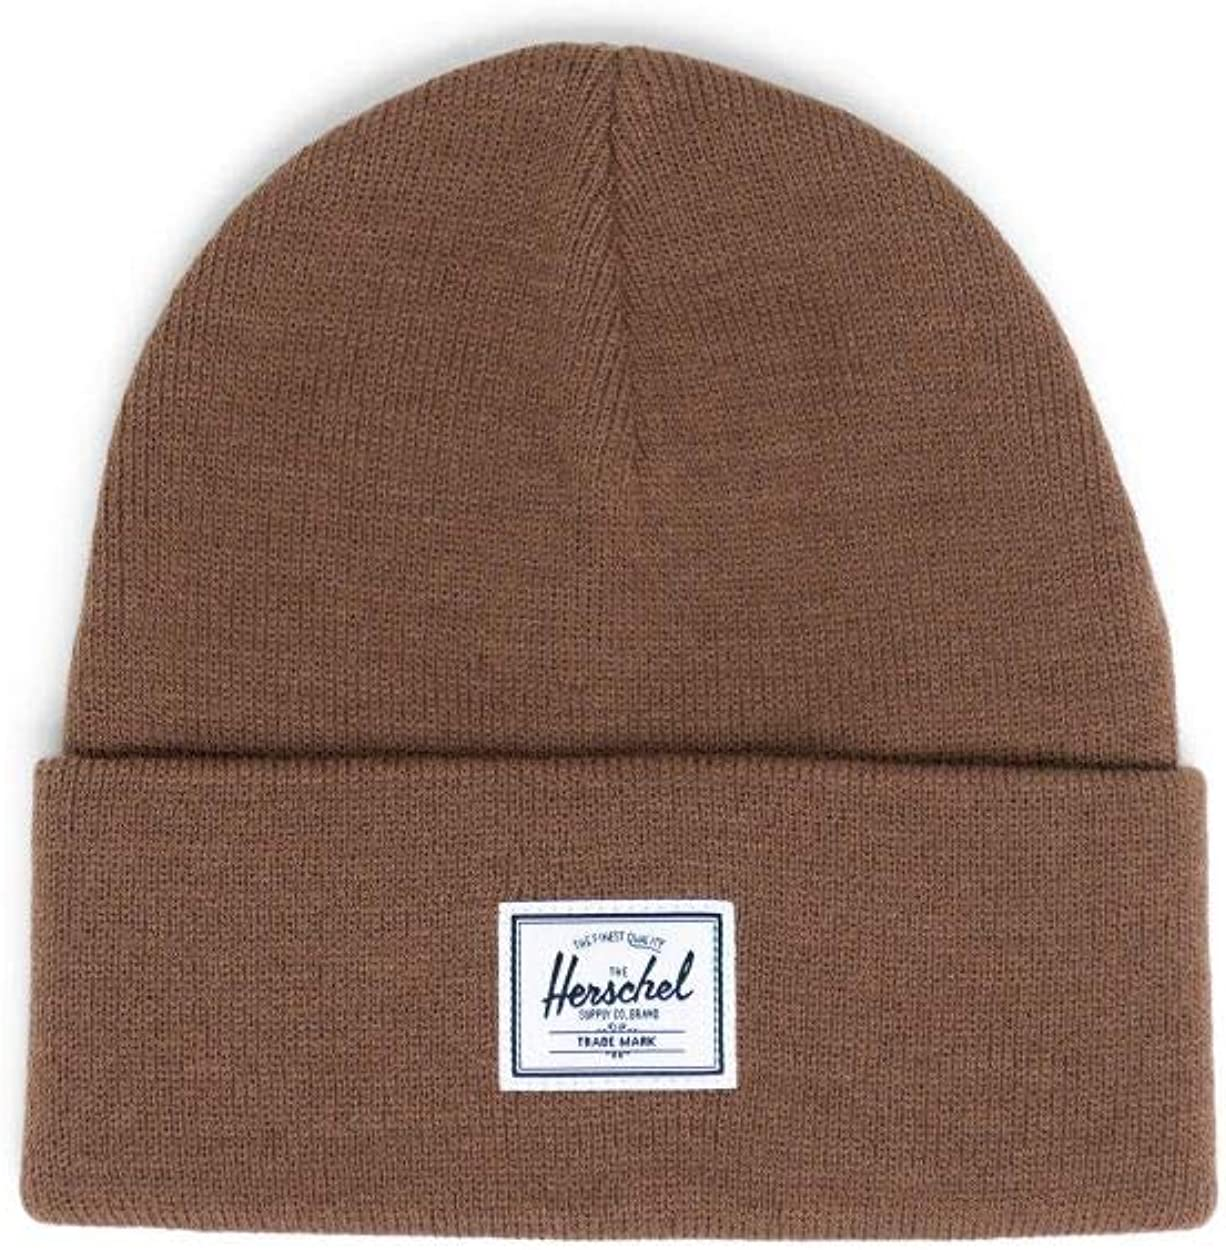 Herschel Supply Co Mens Elmer Beanie Hat